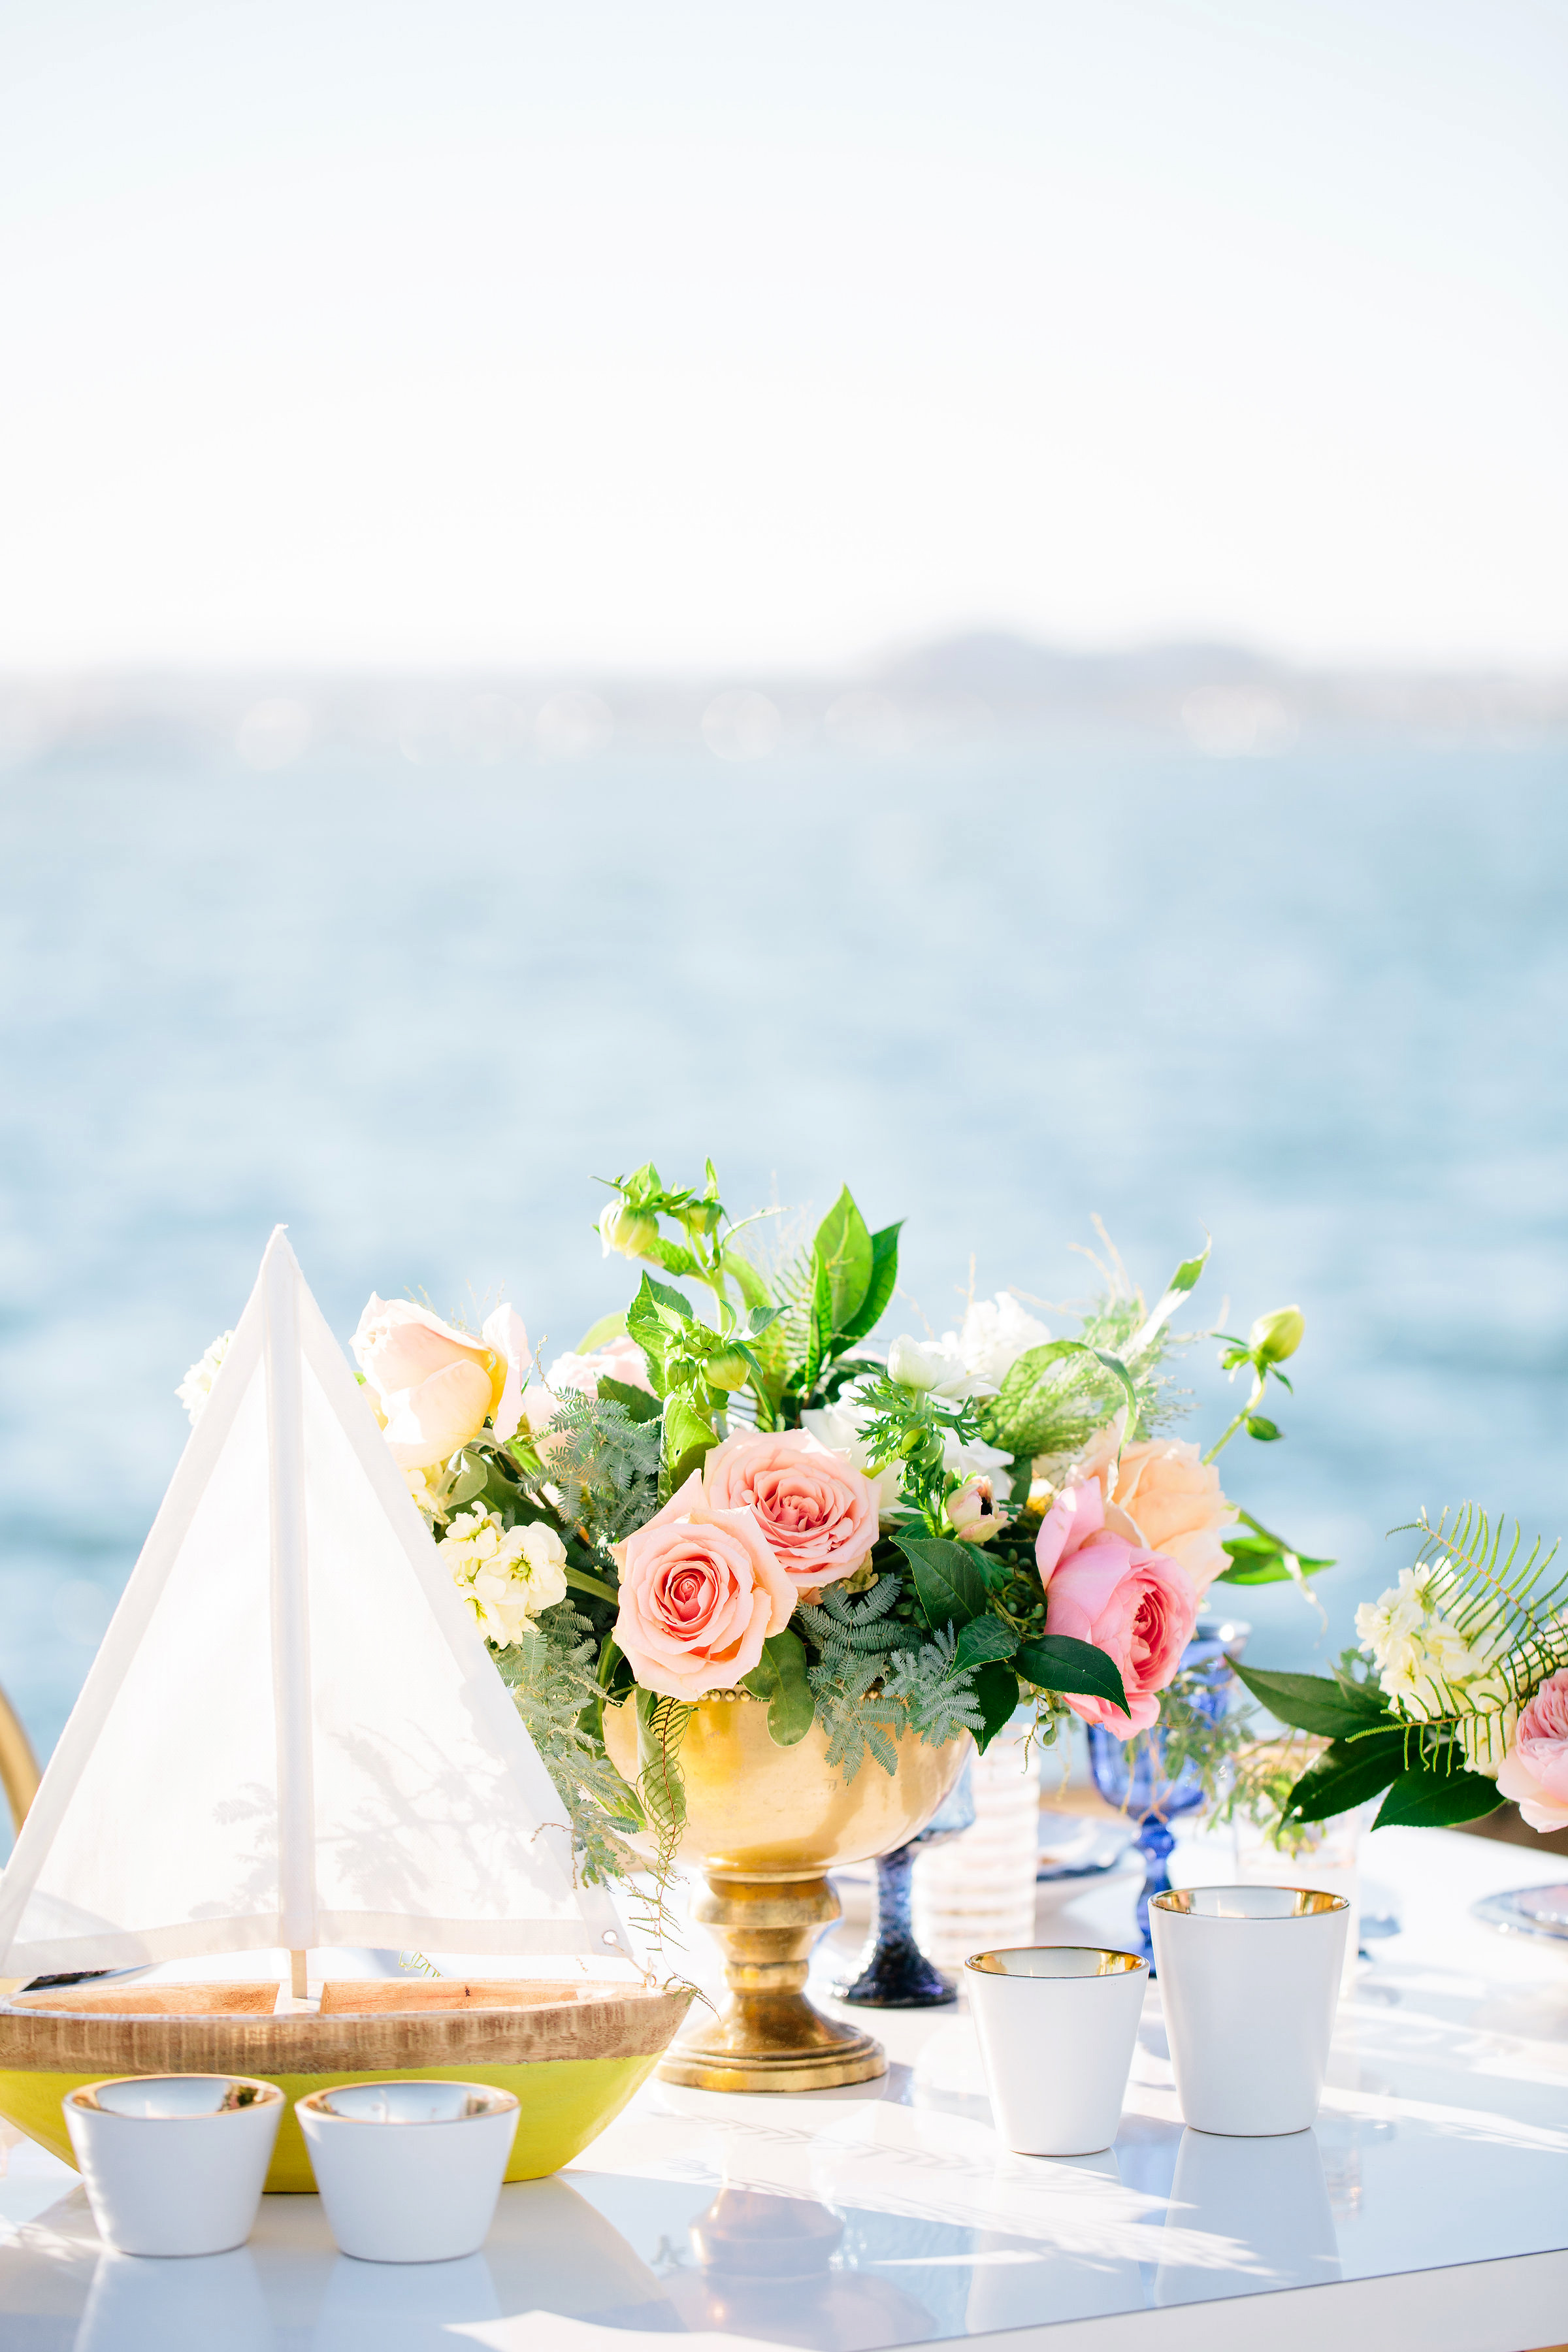 julie anthony real wedding centerpiece flowers sailboat